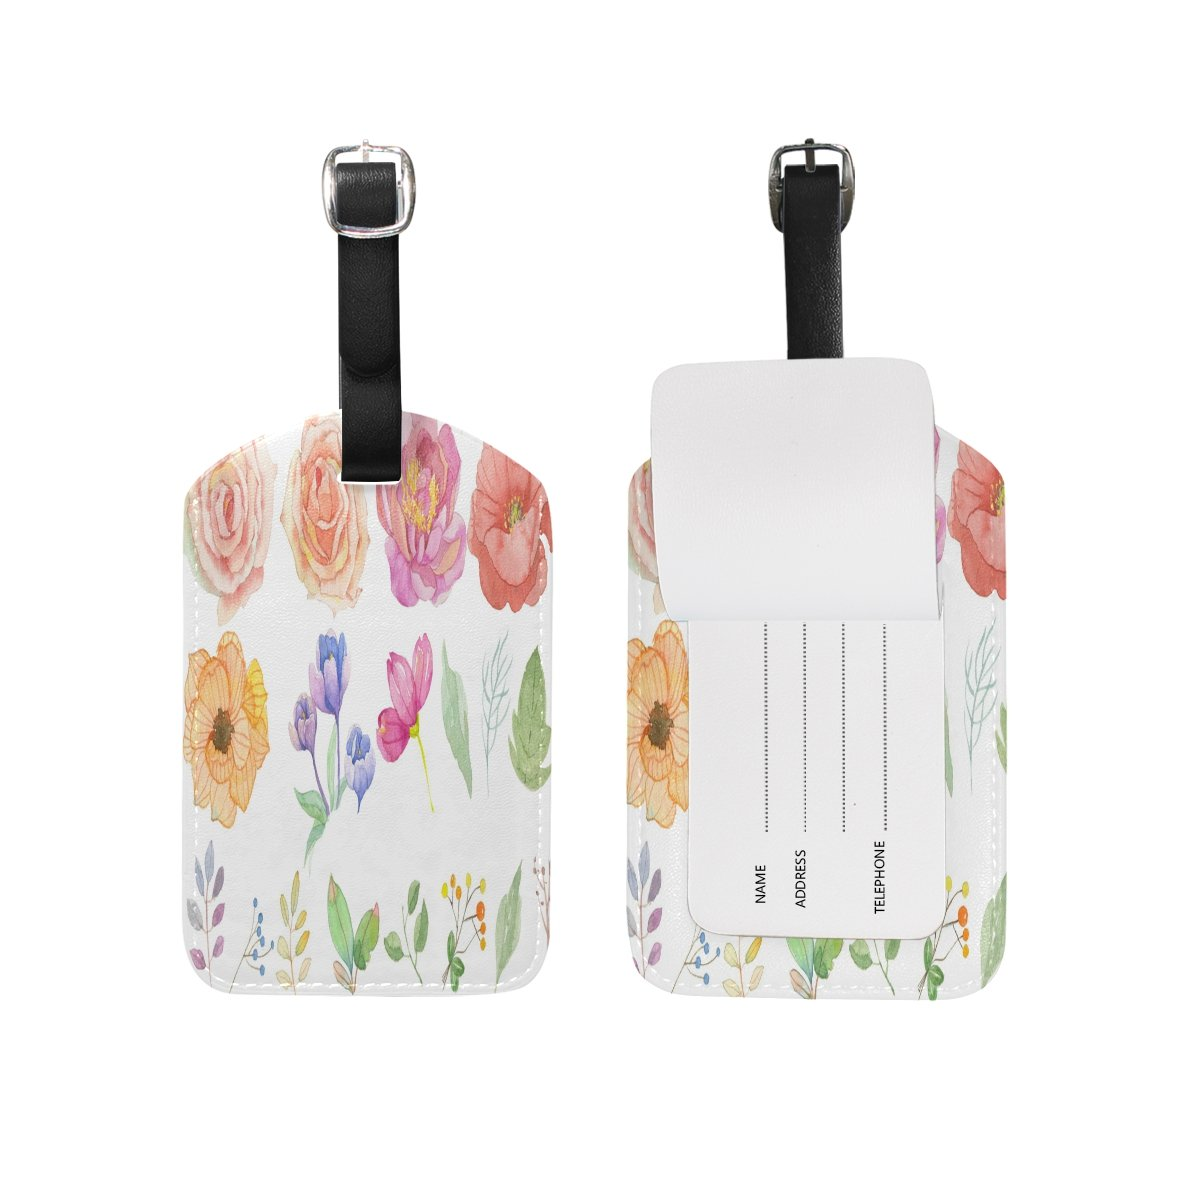 1Pcs Saobao Travel Luggage Tag Watercolor Flower Background PU Leather Baggage Suitcase Travel ID Bag Tag